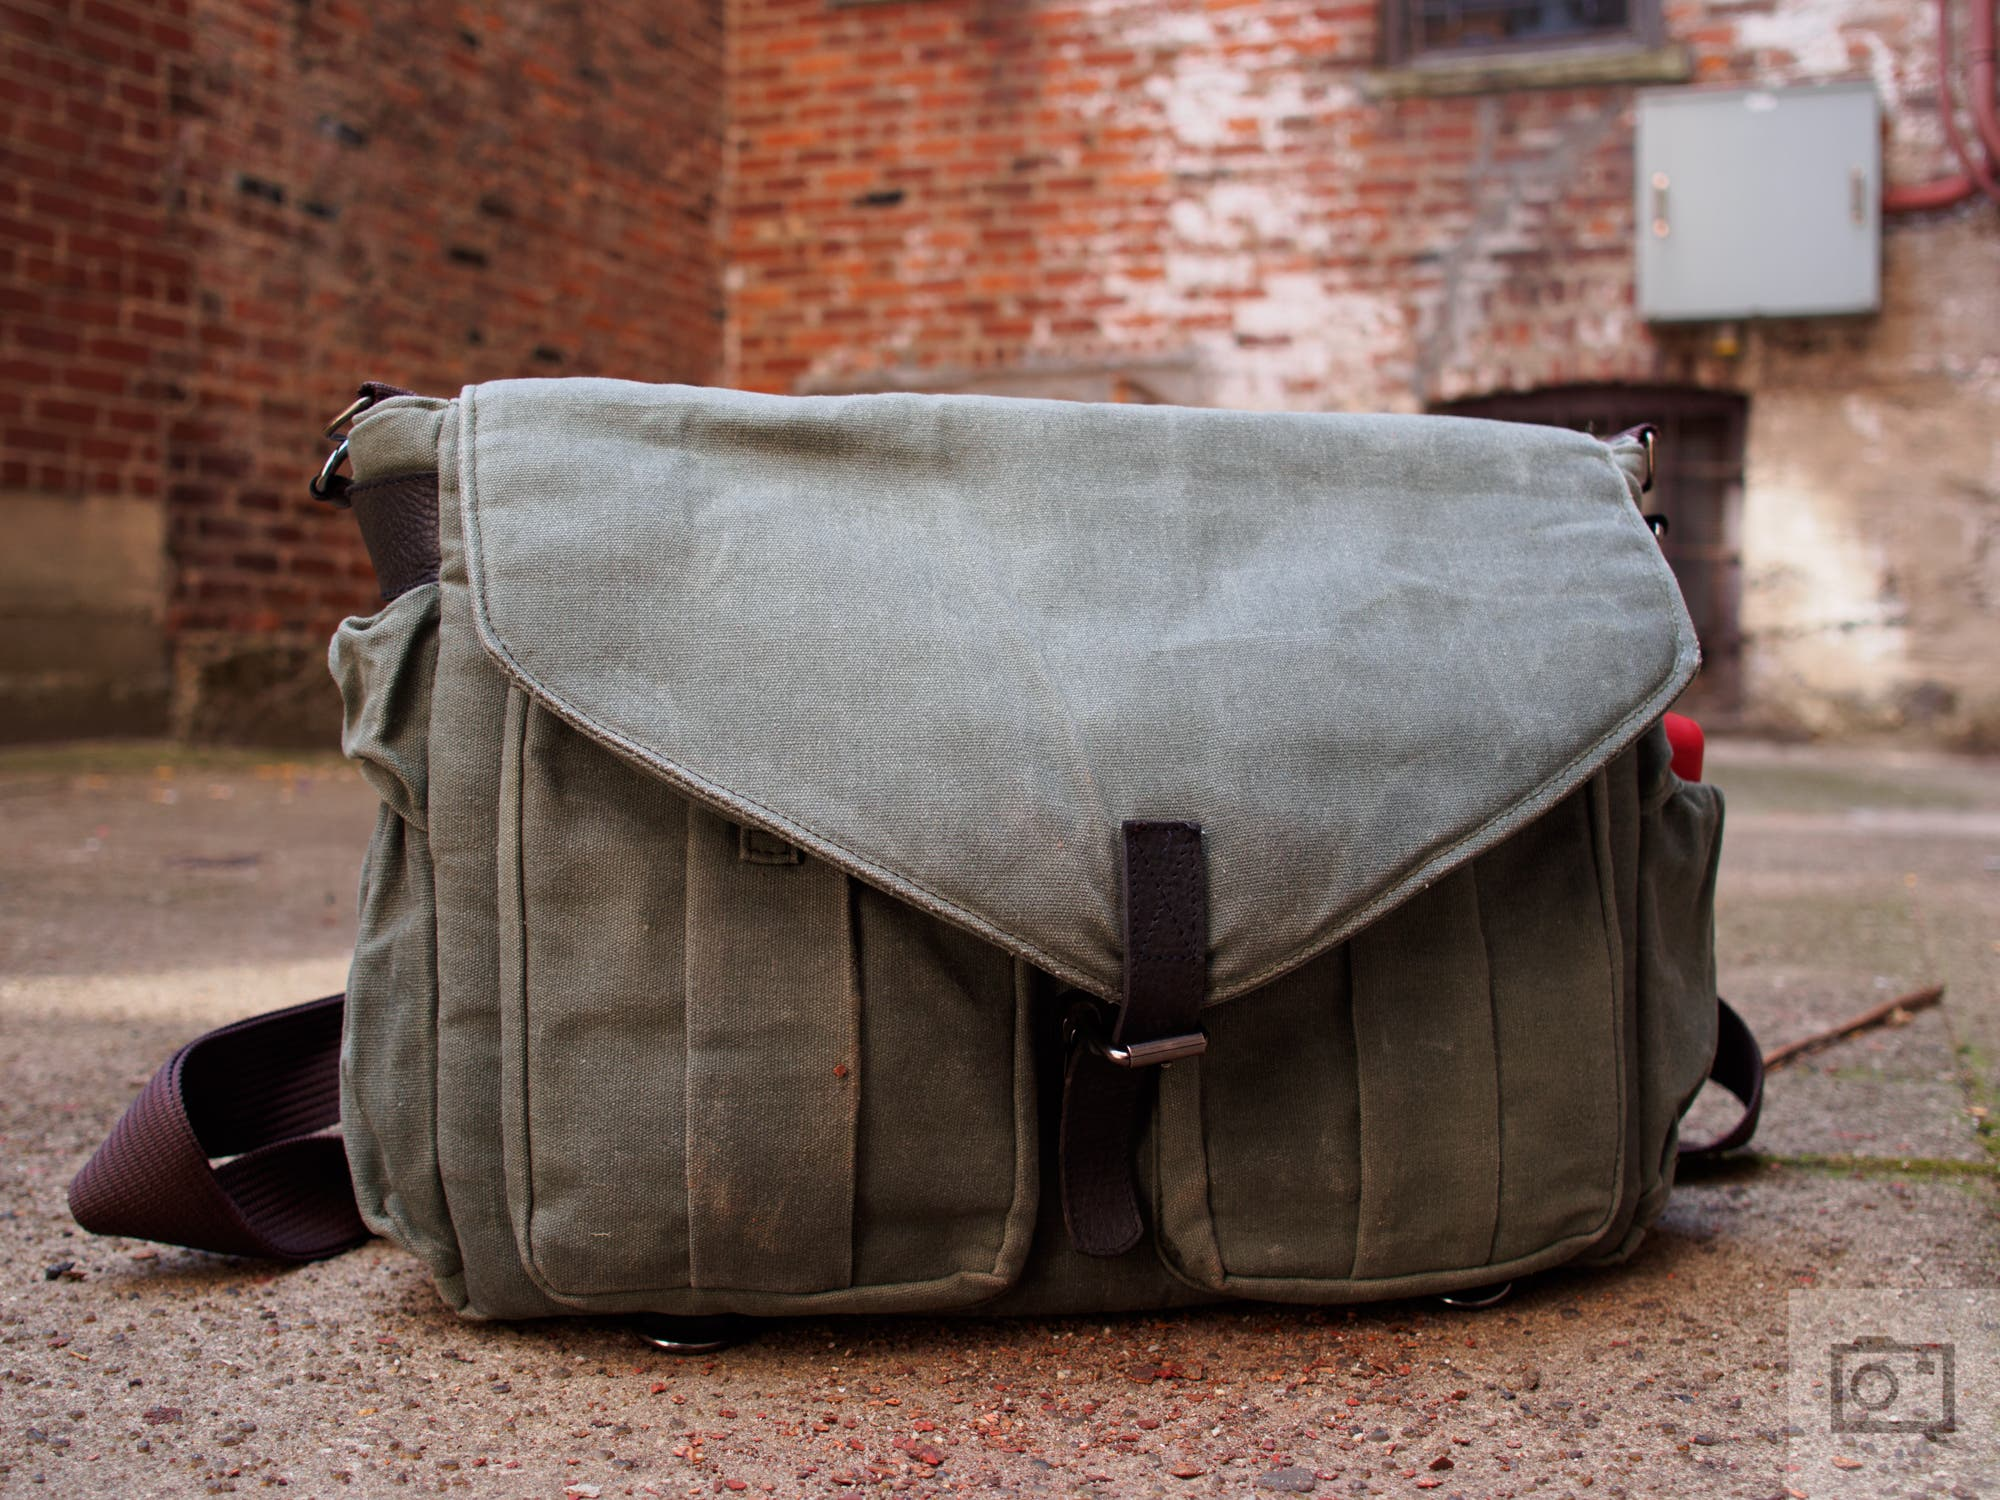 Cheap Accessories: Camera Bag Deals To Increase your Carrying Capacity